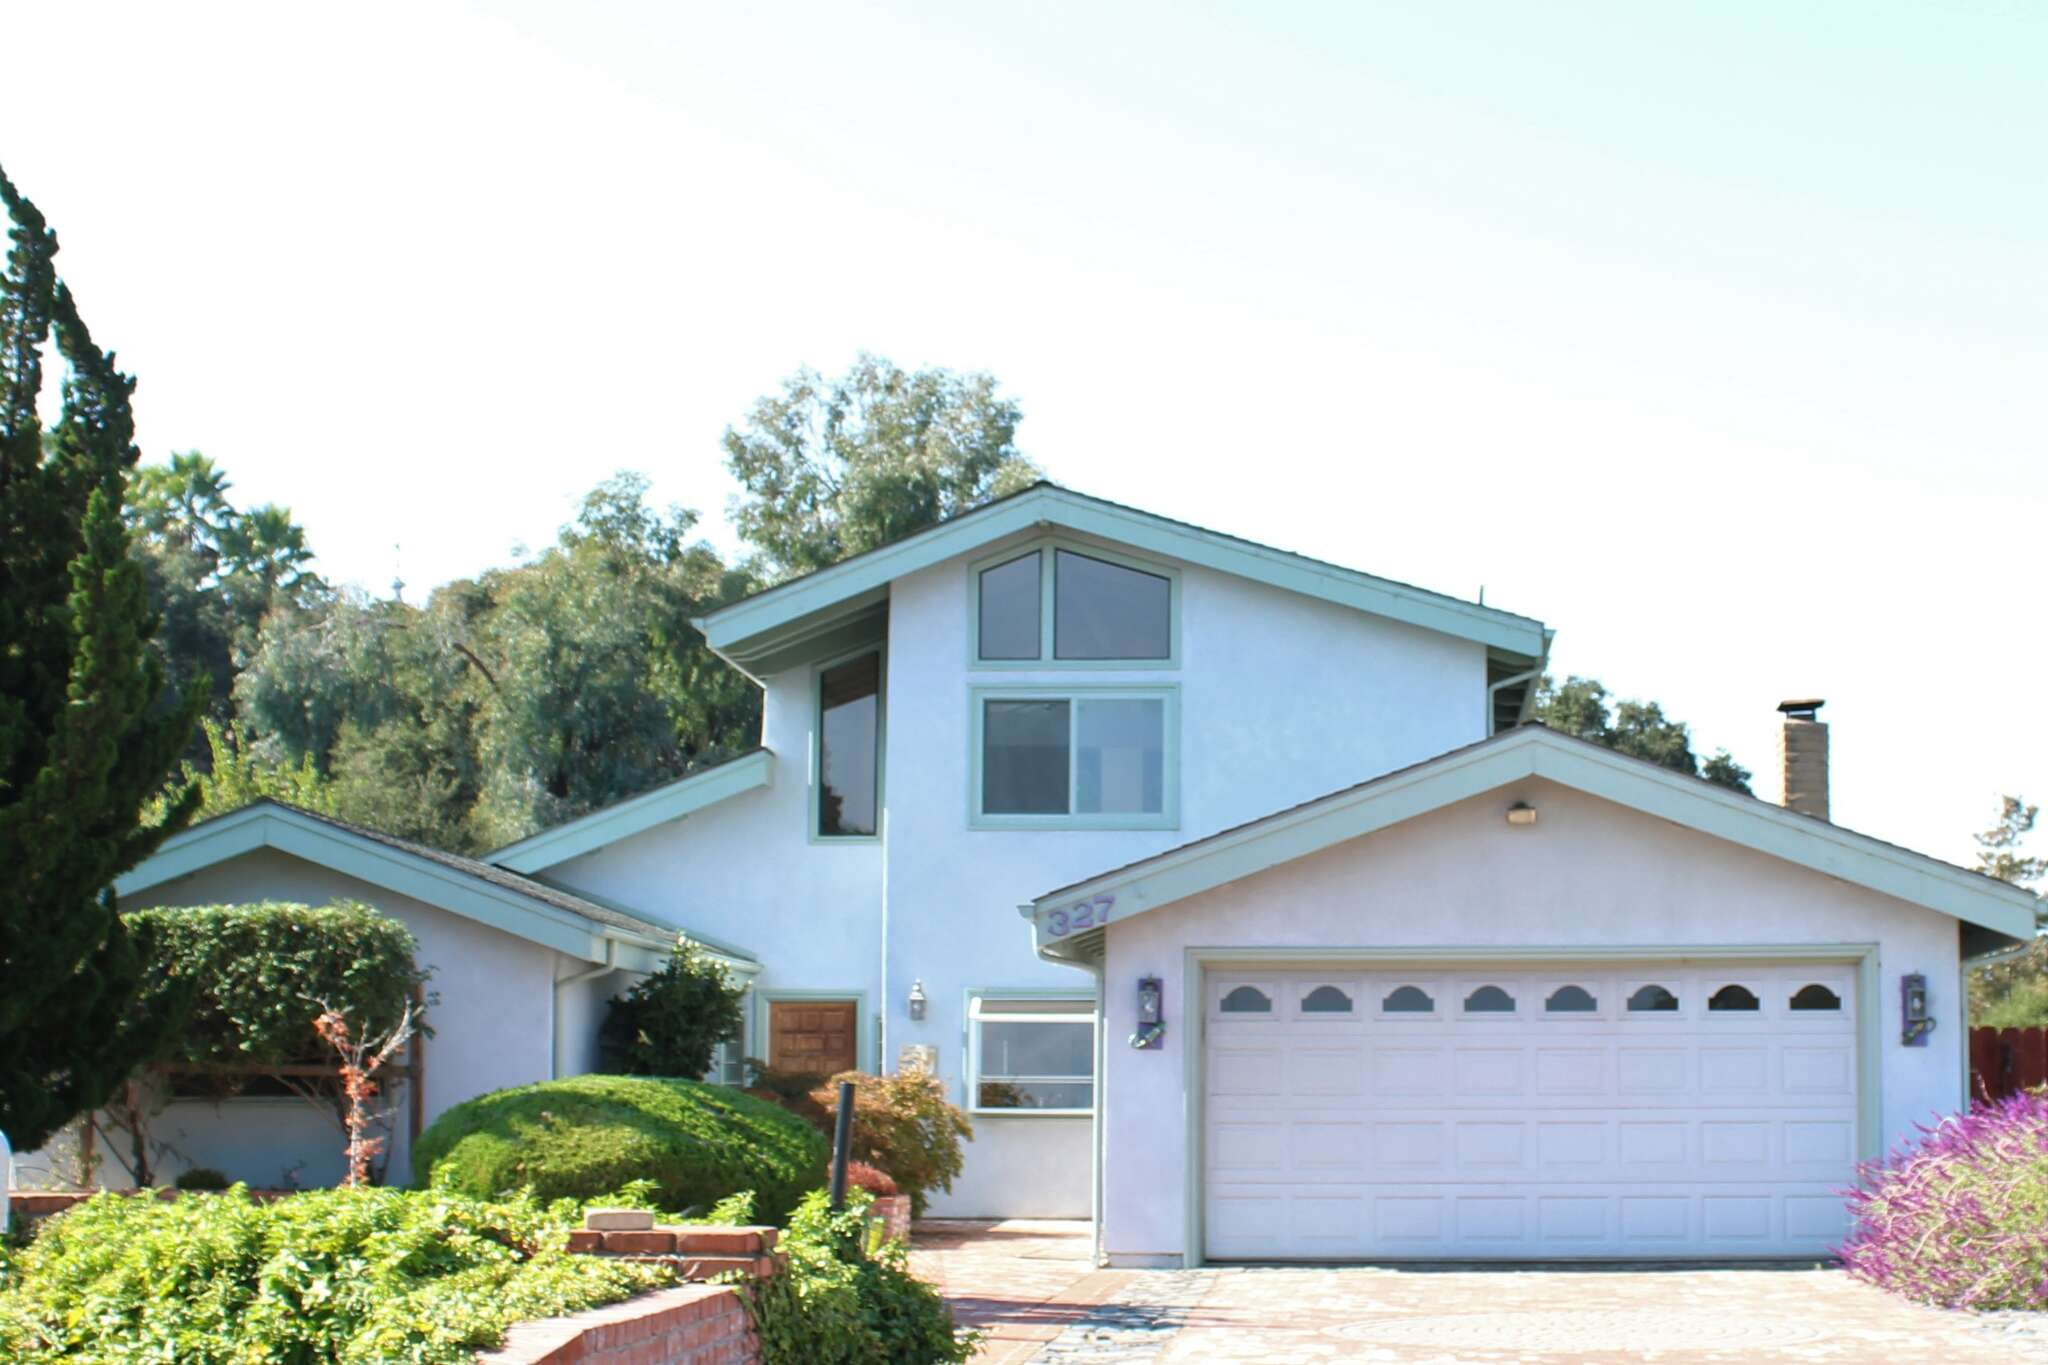 Single Family for Sale at 327 Miller Way Arroyo Grande, California 93420 United States